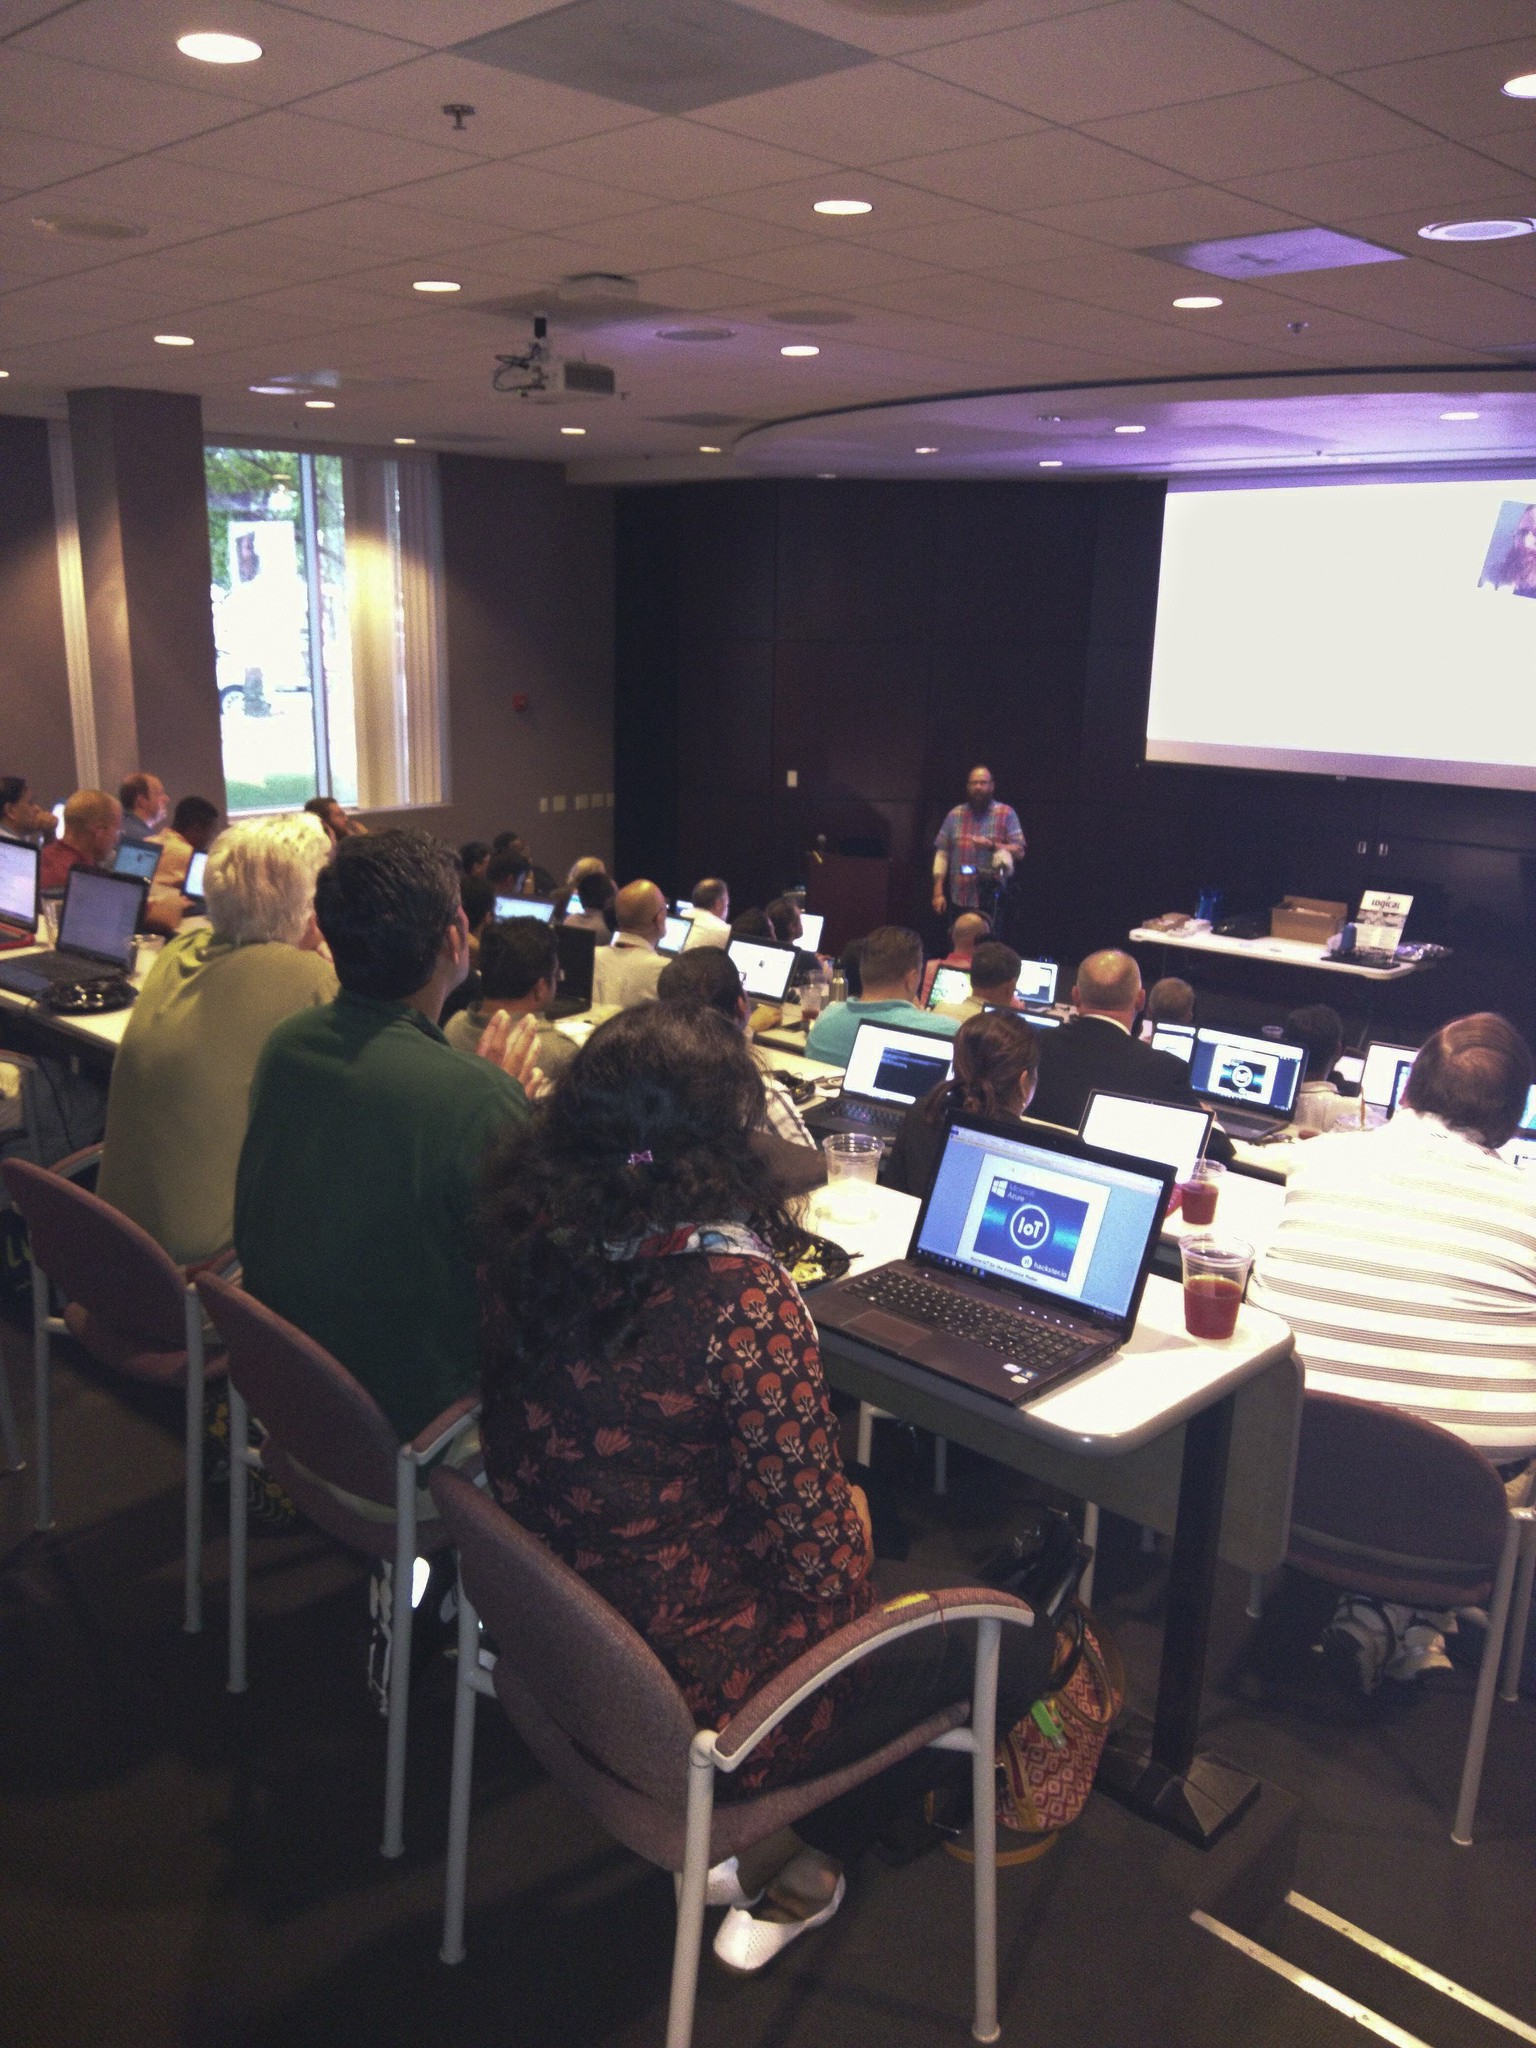 Aproximately 50 people attended the Charlotte IoT meetup featuring Microsoft Azure. (Photo: Dan Thyer)